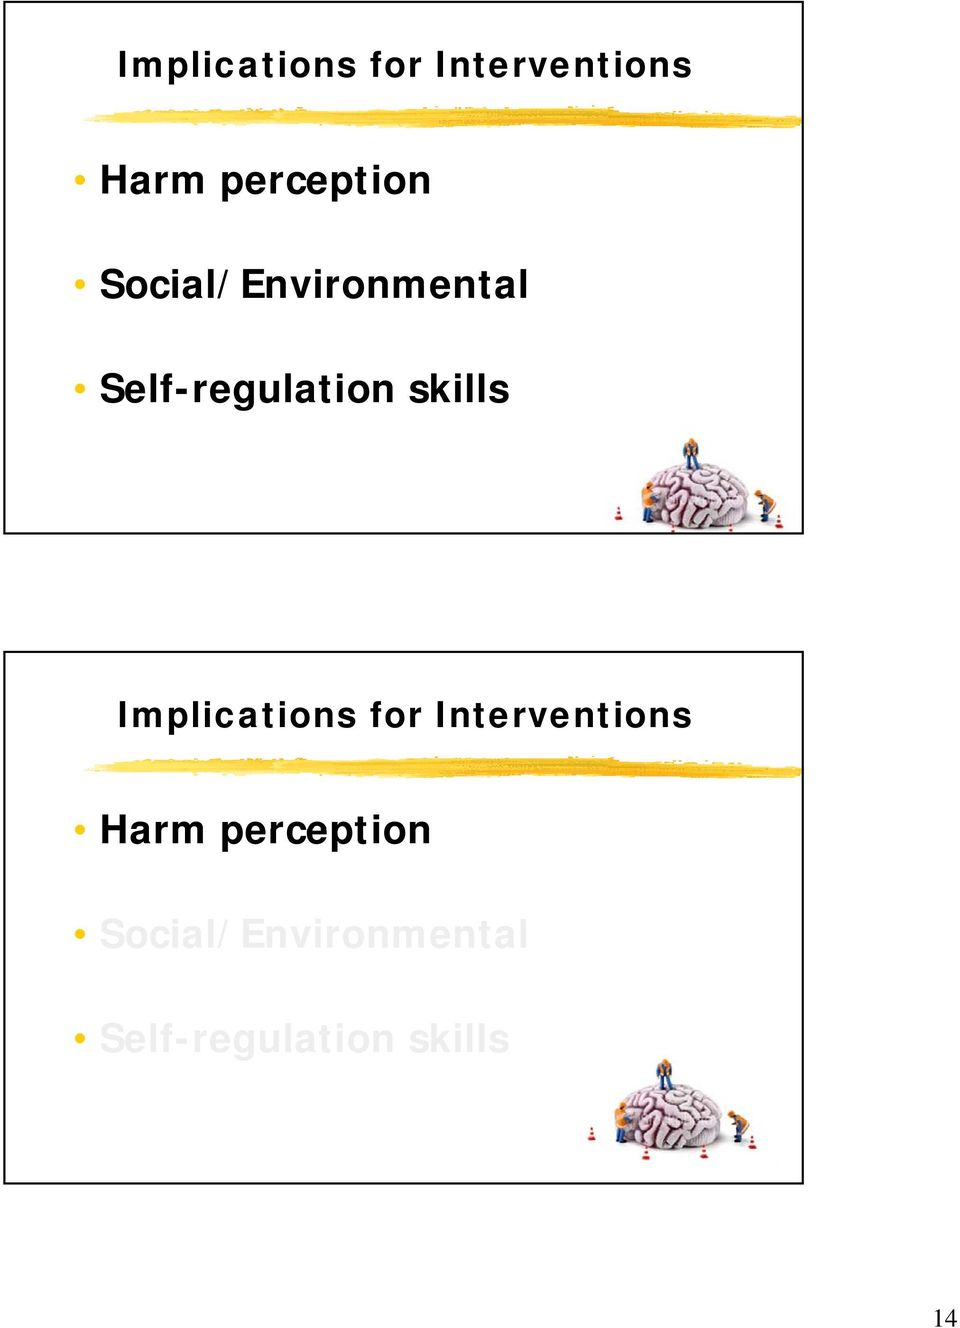 Self-regulation skills   Self-regulation